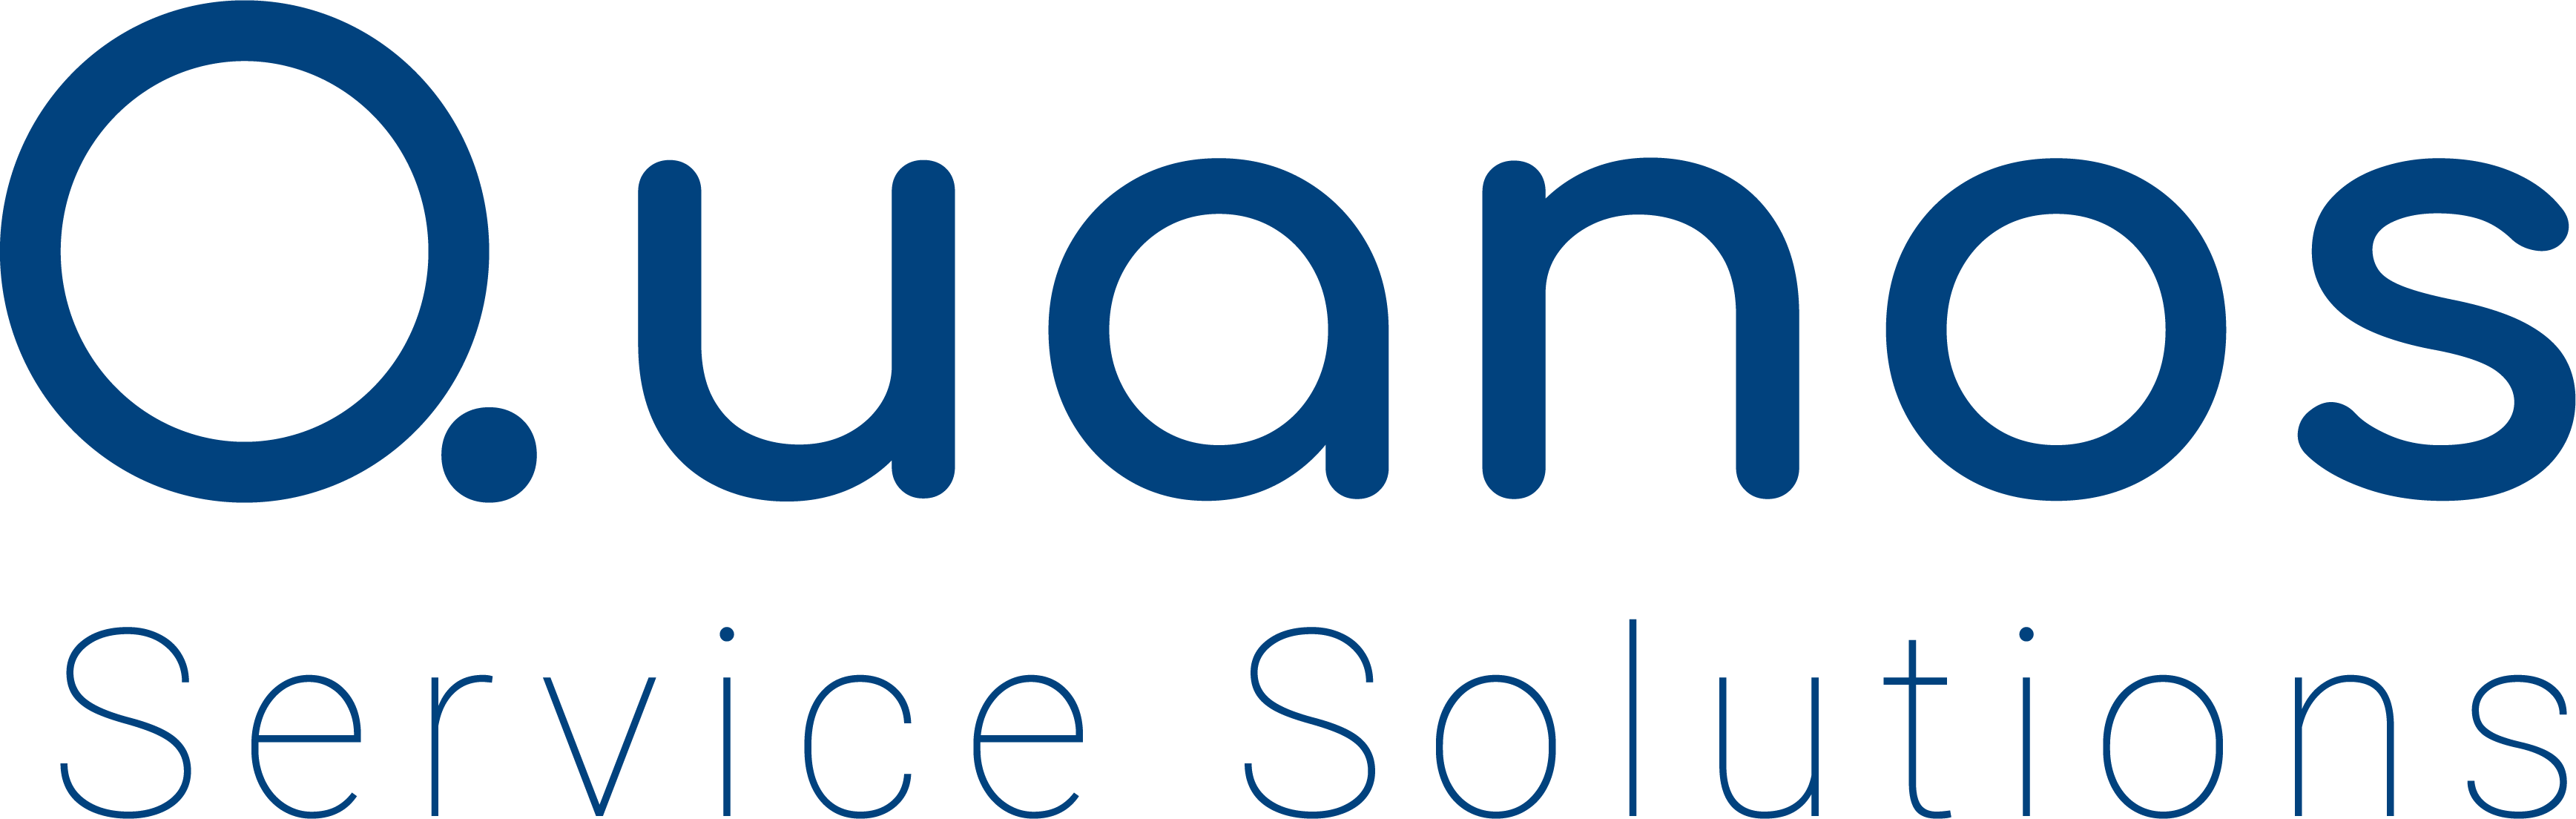 Sales Manager (m/w/d)  Software B2B - Job Fürth, Inning a. Ammersee, Amberg, Oberpfalz, Home office - Karriere Quanos Service Solutions GmbH - Application form